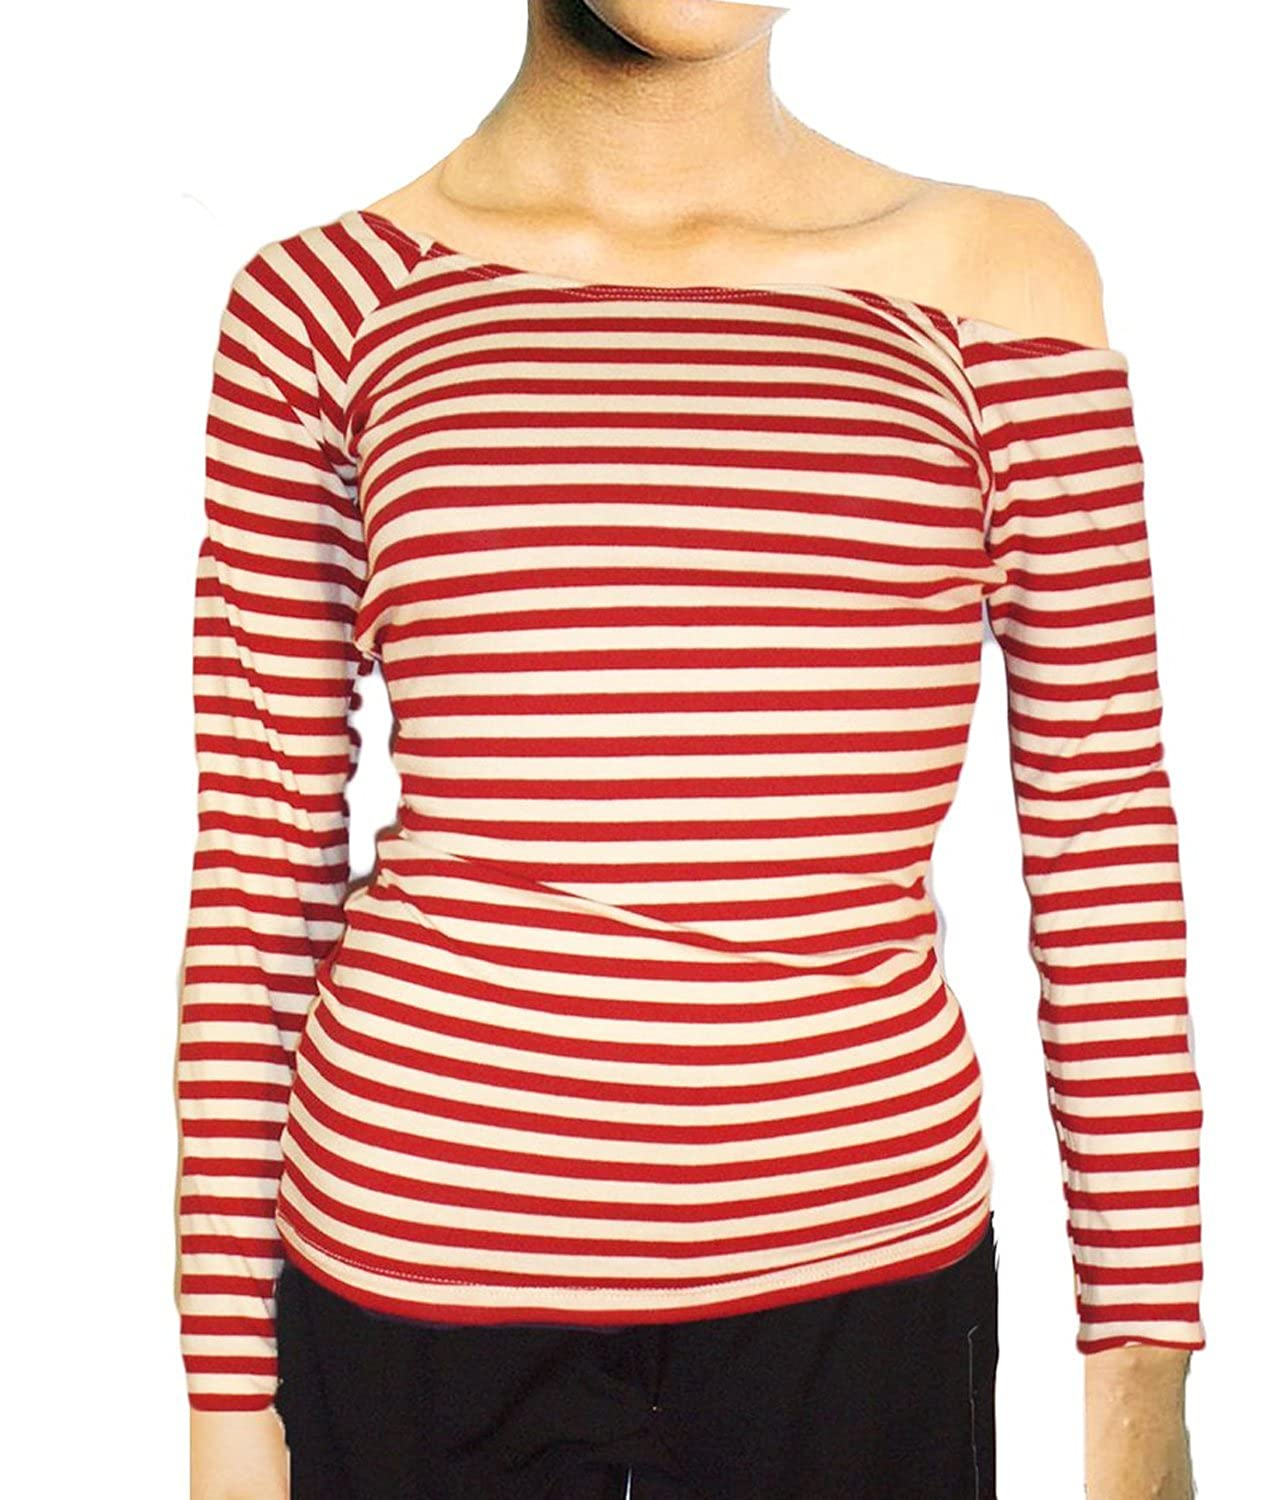 Women's Long Sleeve Off the Shoulder Striped Knit Top